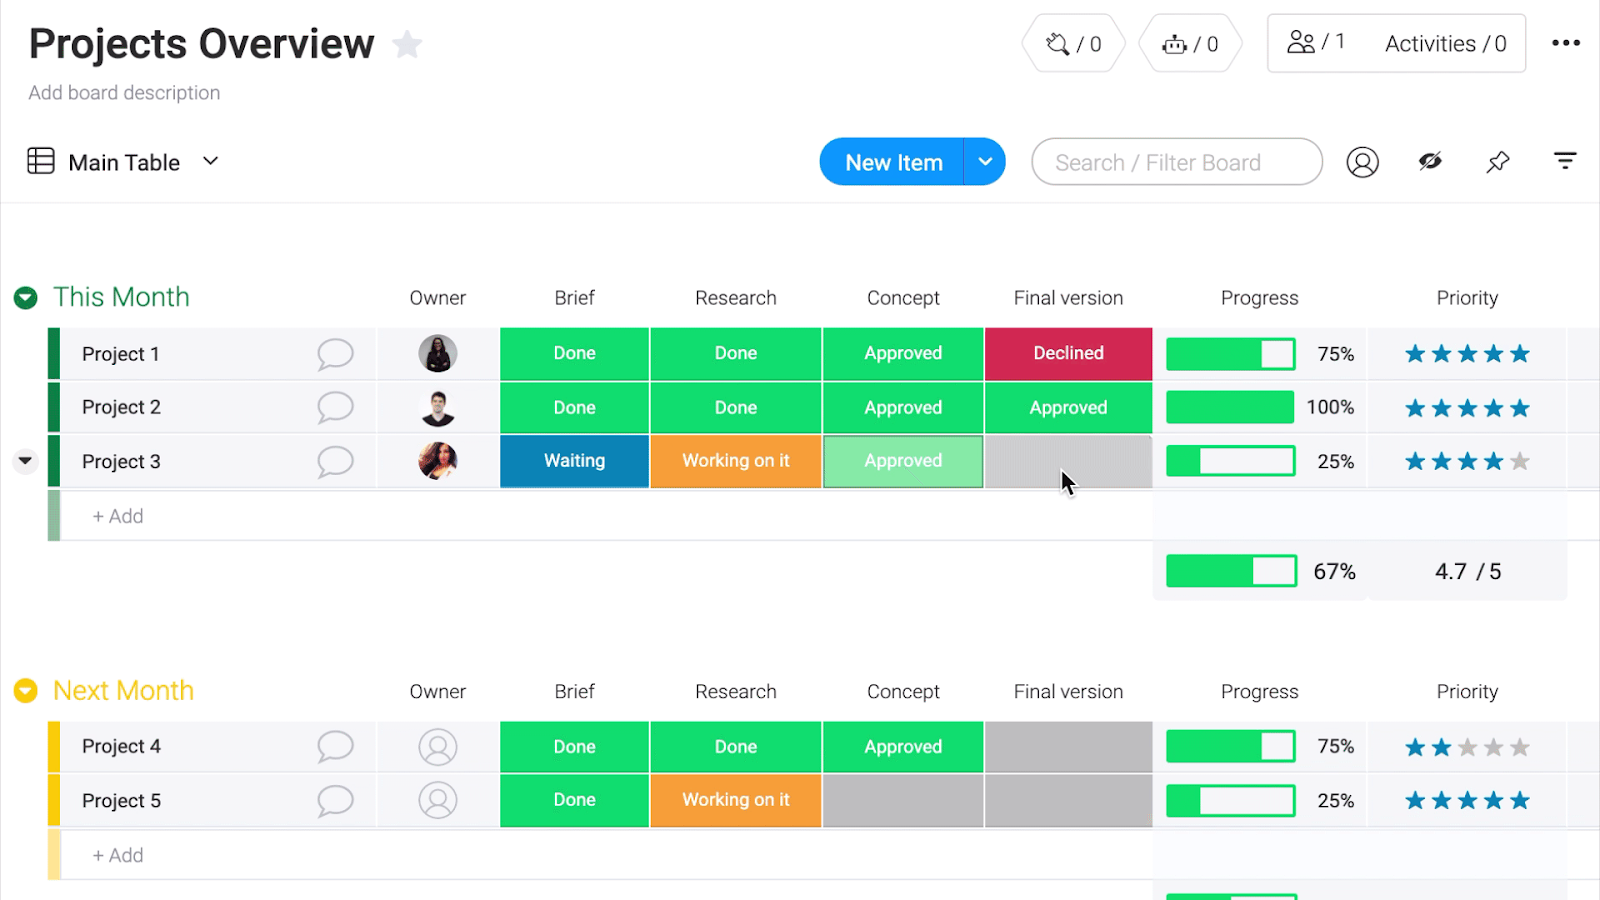 monday.com provides users with a projects overview template